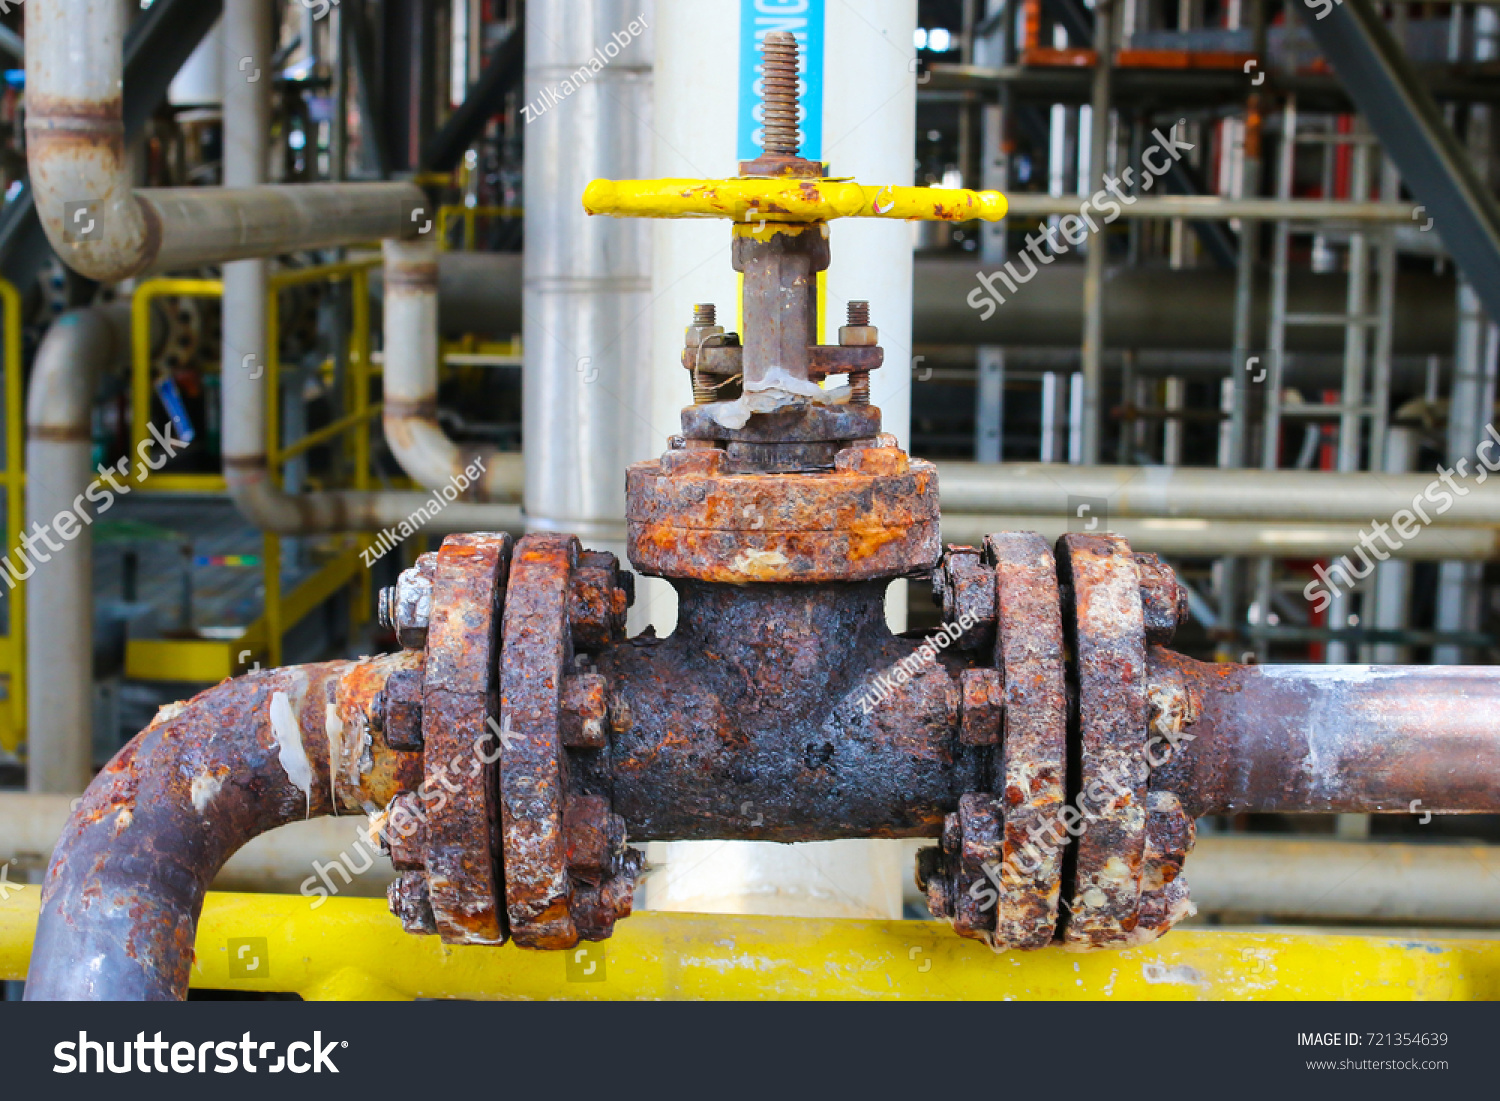 A heavily corroded manual valve in oil and gas refinery petrochemical plant.